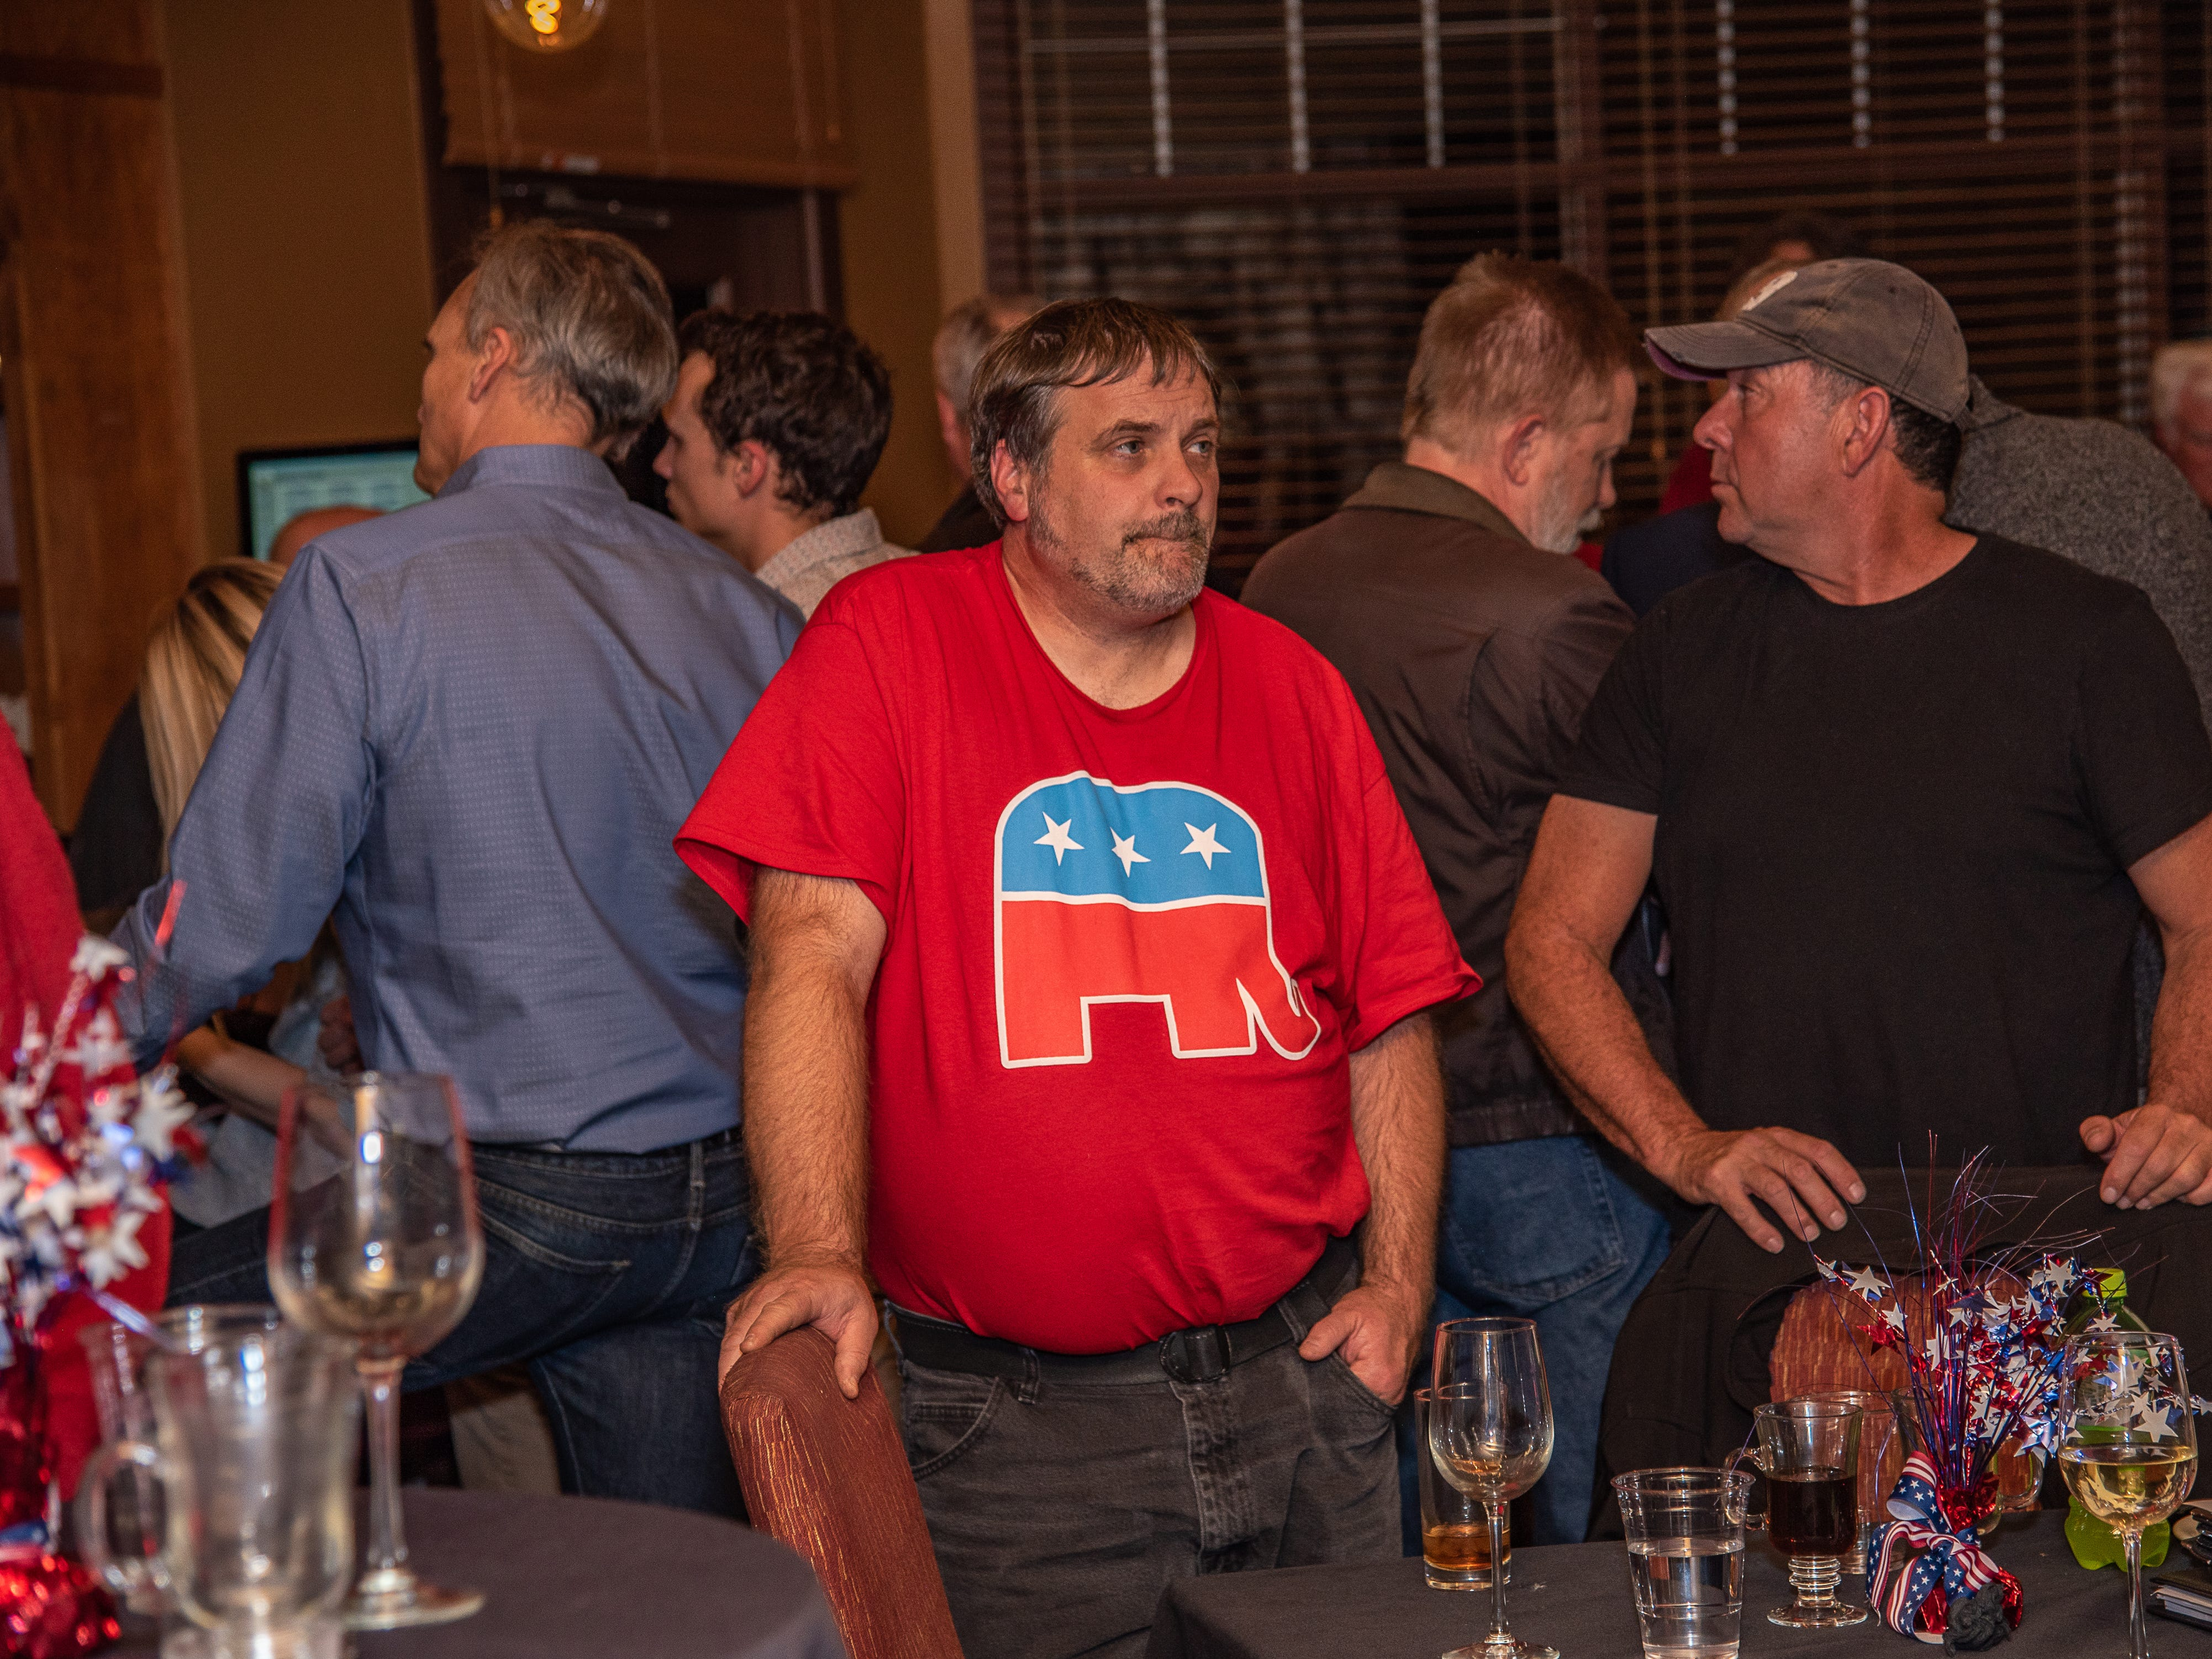 A GOP supporter reacts to early election results at a watch party on Tuesday, November 6, 2018, at Ptarmigan Country Club in Fort Collins, Colo.